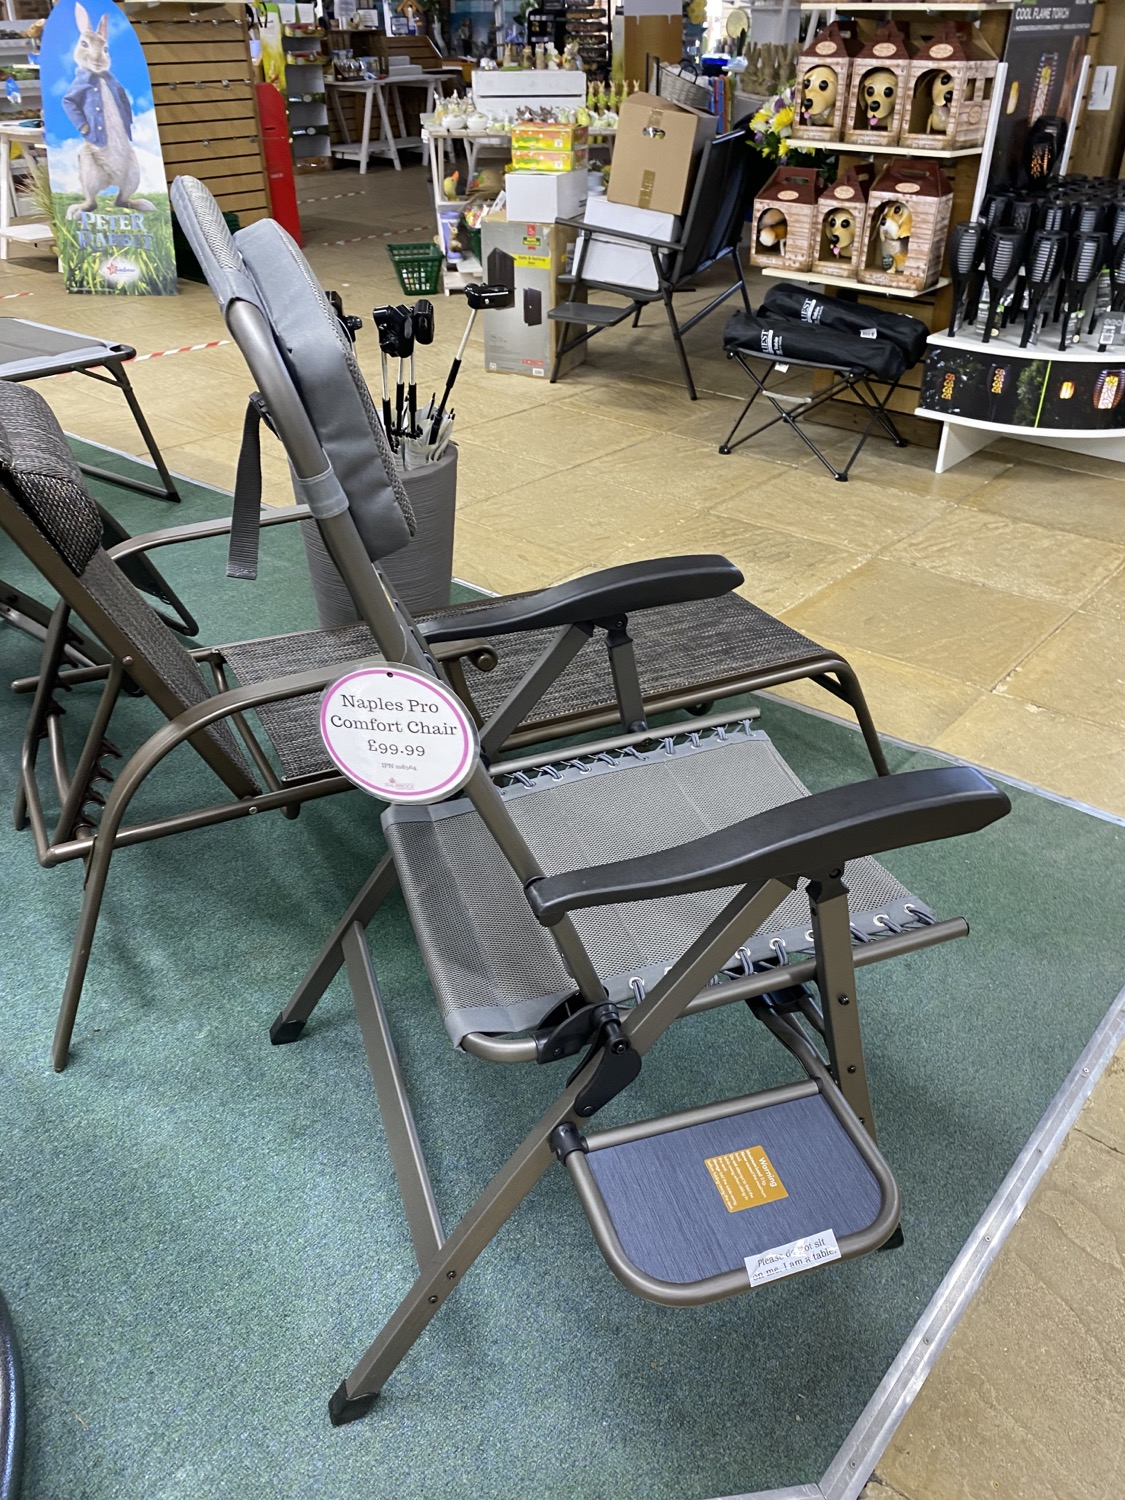 Naples Pro Comfort Chair with table- £99.99